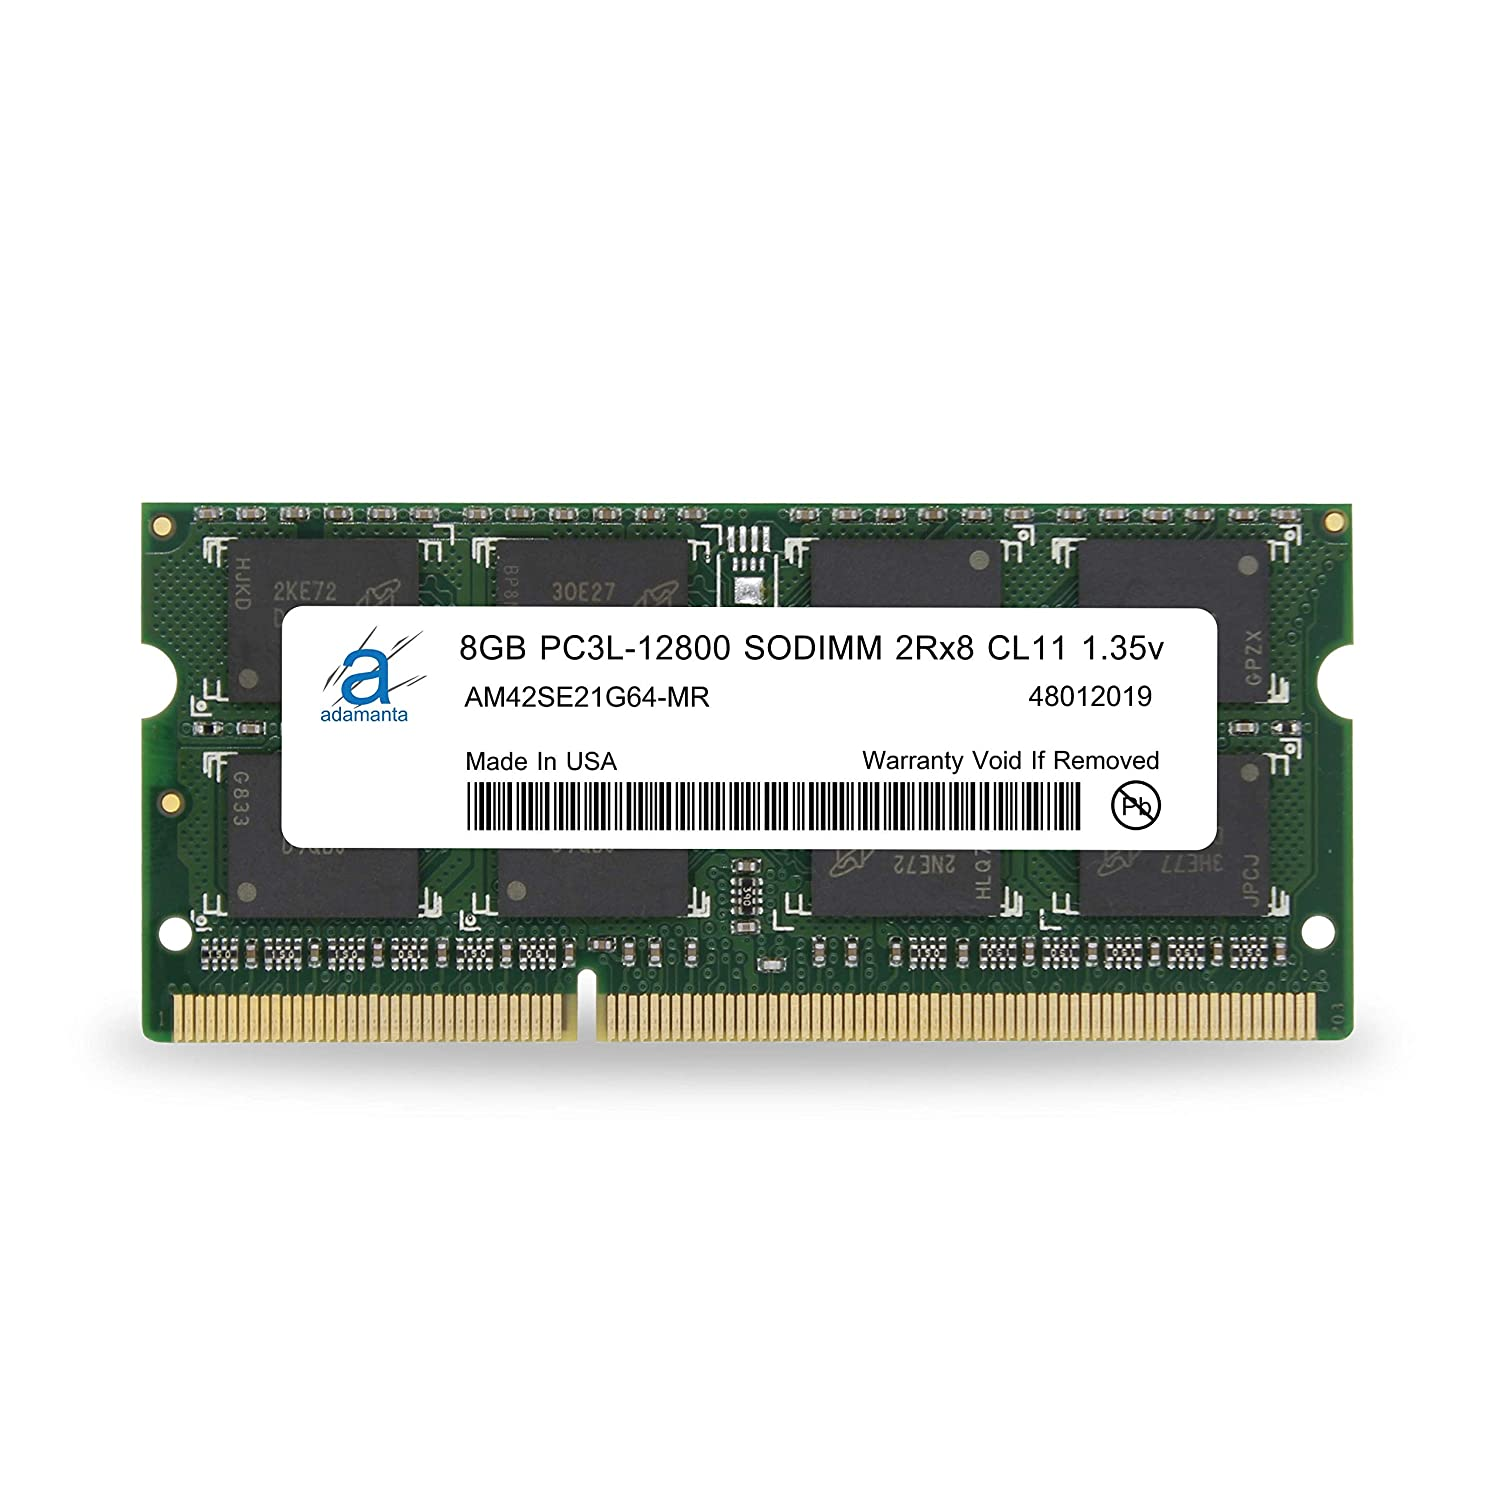 Adamanta 8GB (1x8GB) Laptop Memory Upgrade Compatible with Dell Alienware, Inspiron, Latitude, Optiplex, Precision, Vostro DDR3L 1600Mhz PC3L-12800 SODIMM 2Rx8 CL11 1.35v Notebook RAM P/N SNPN2M64C/8G